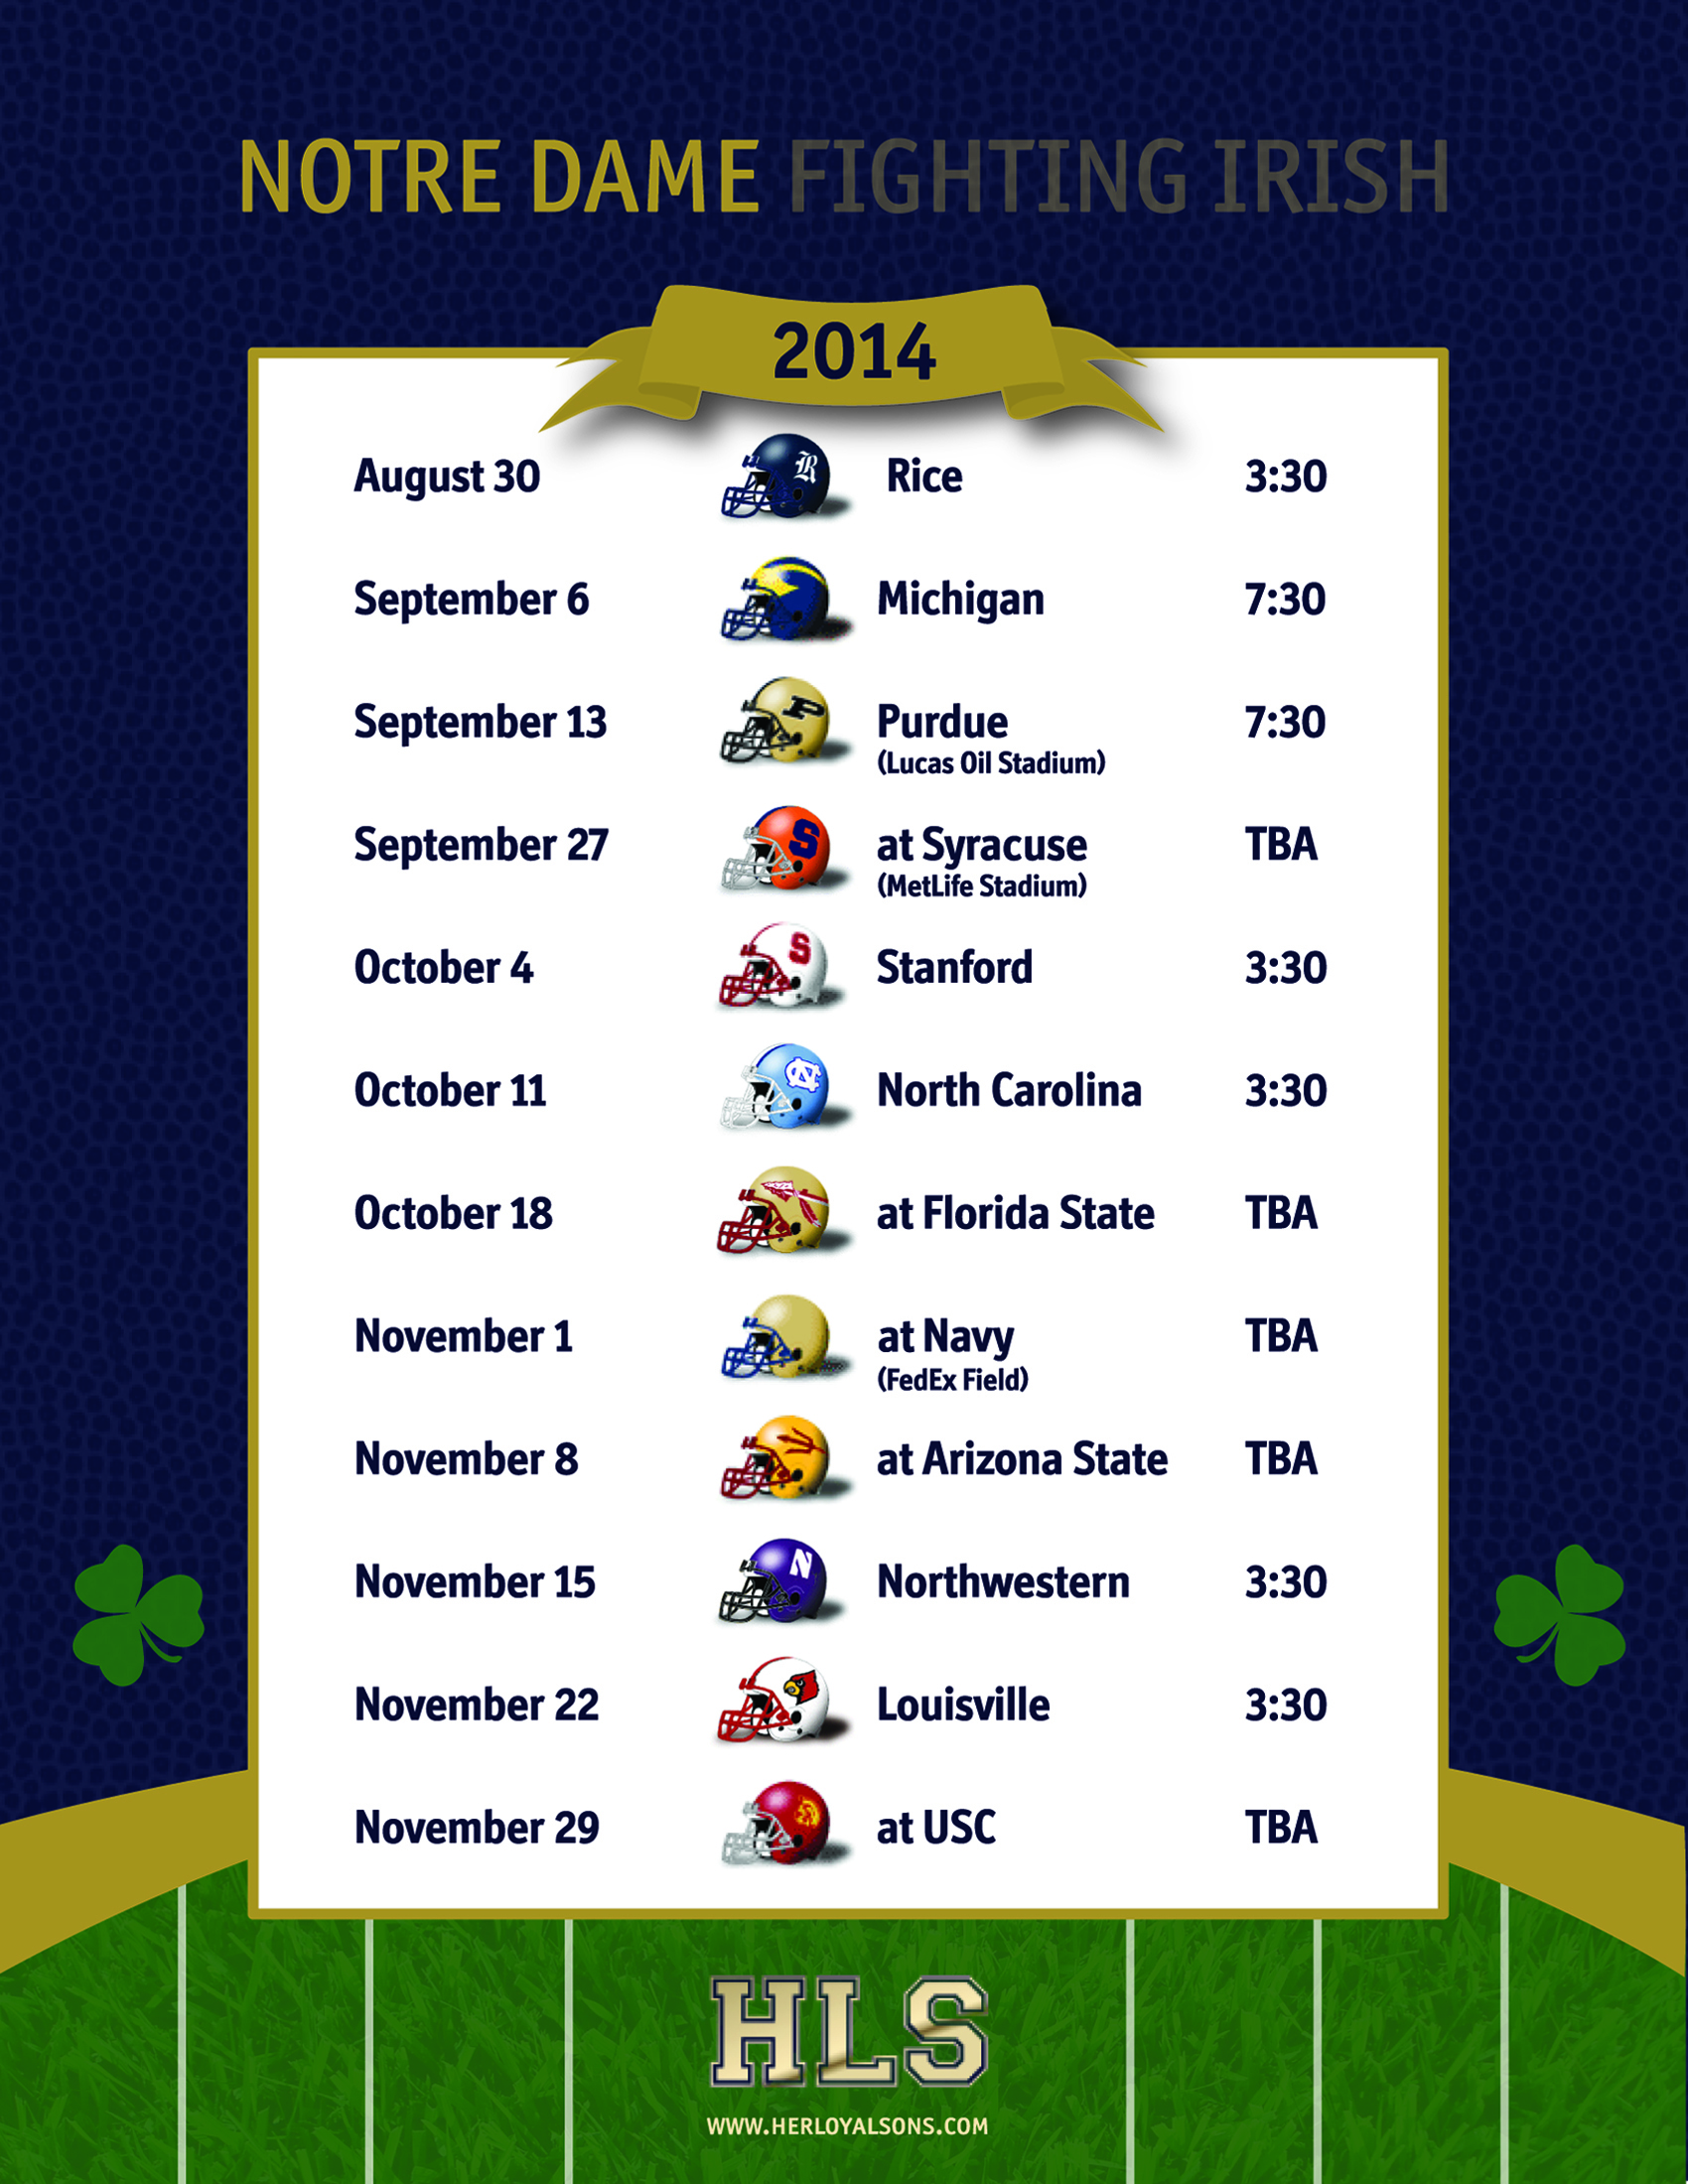 Notre Dame Football Schedule 2020 Printable.St Martin Of Tours Mass Schedule Notre Dame Football